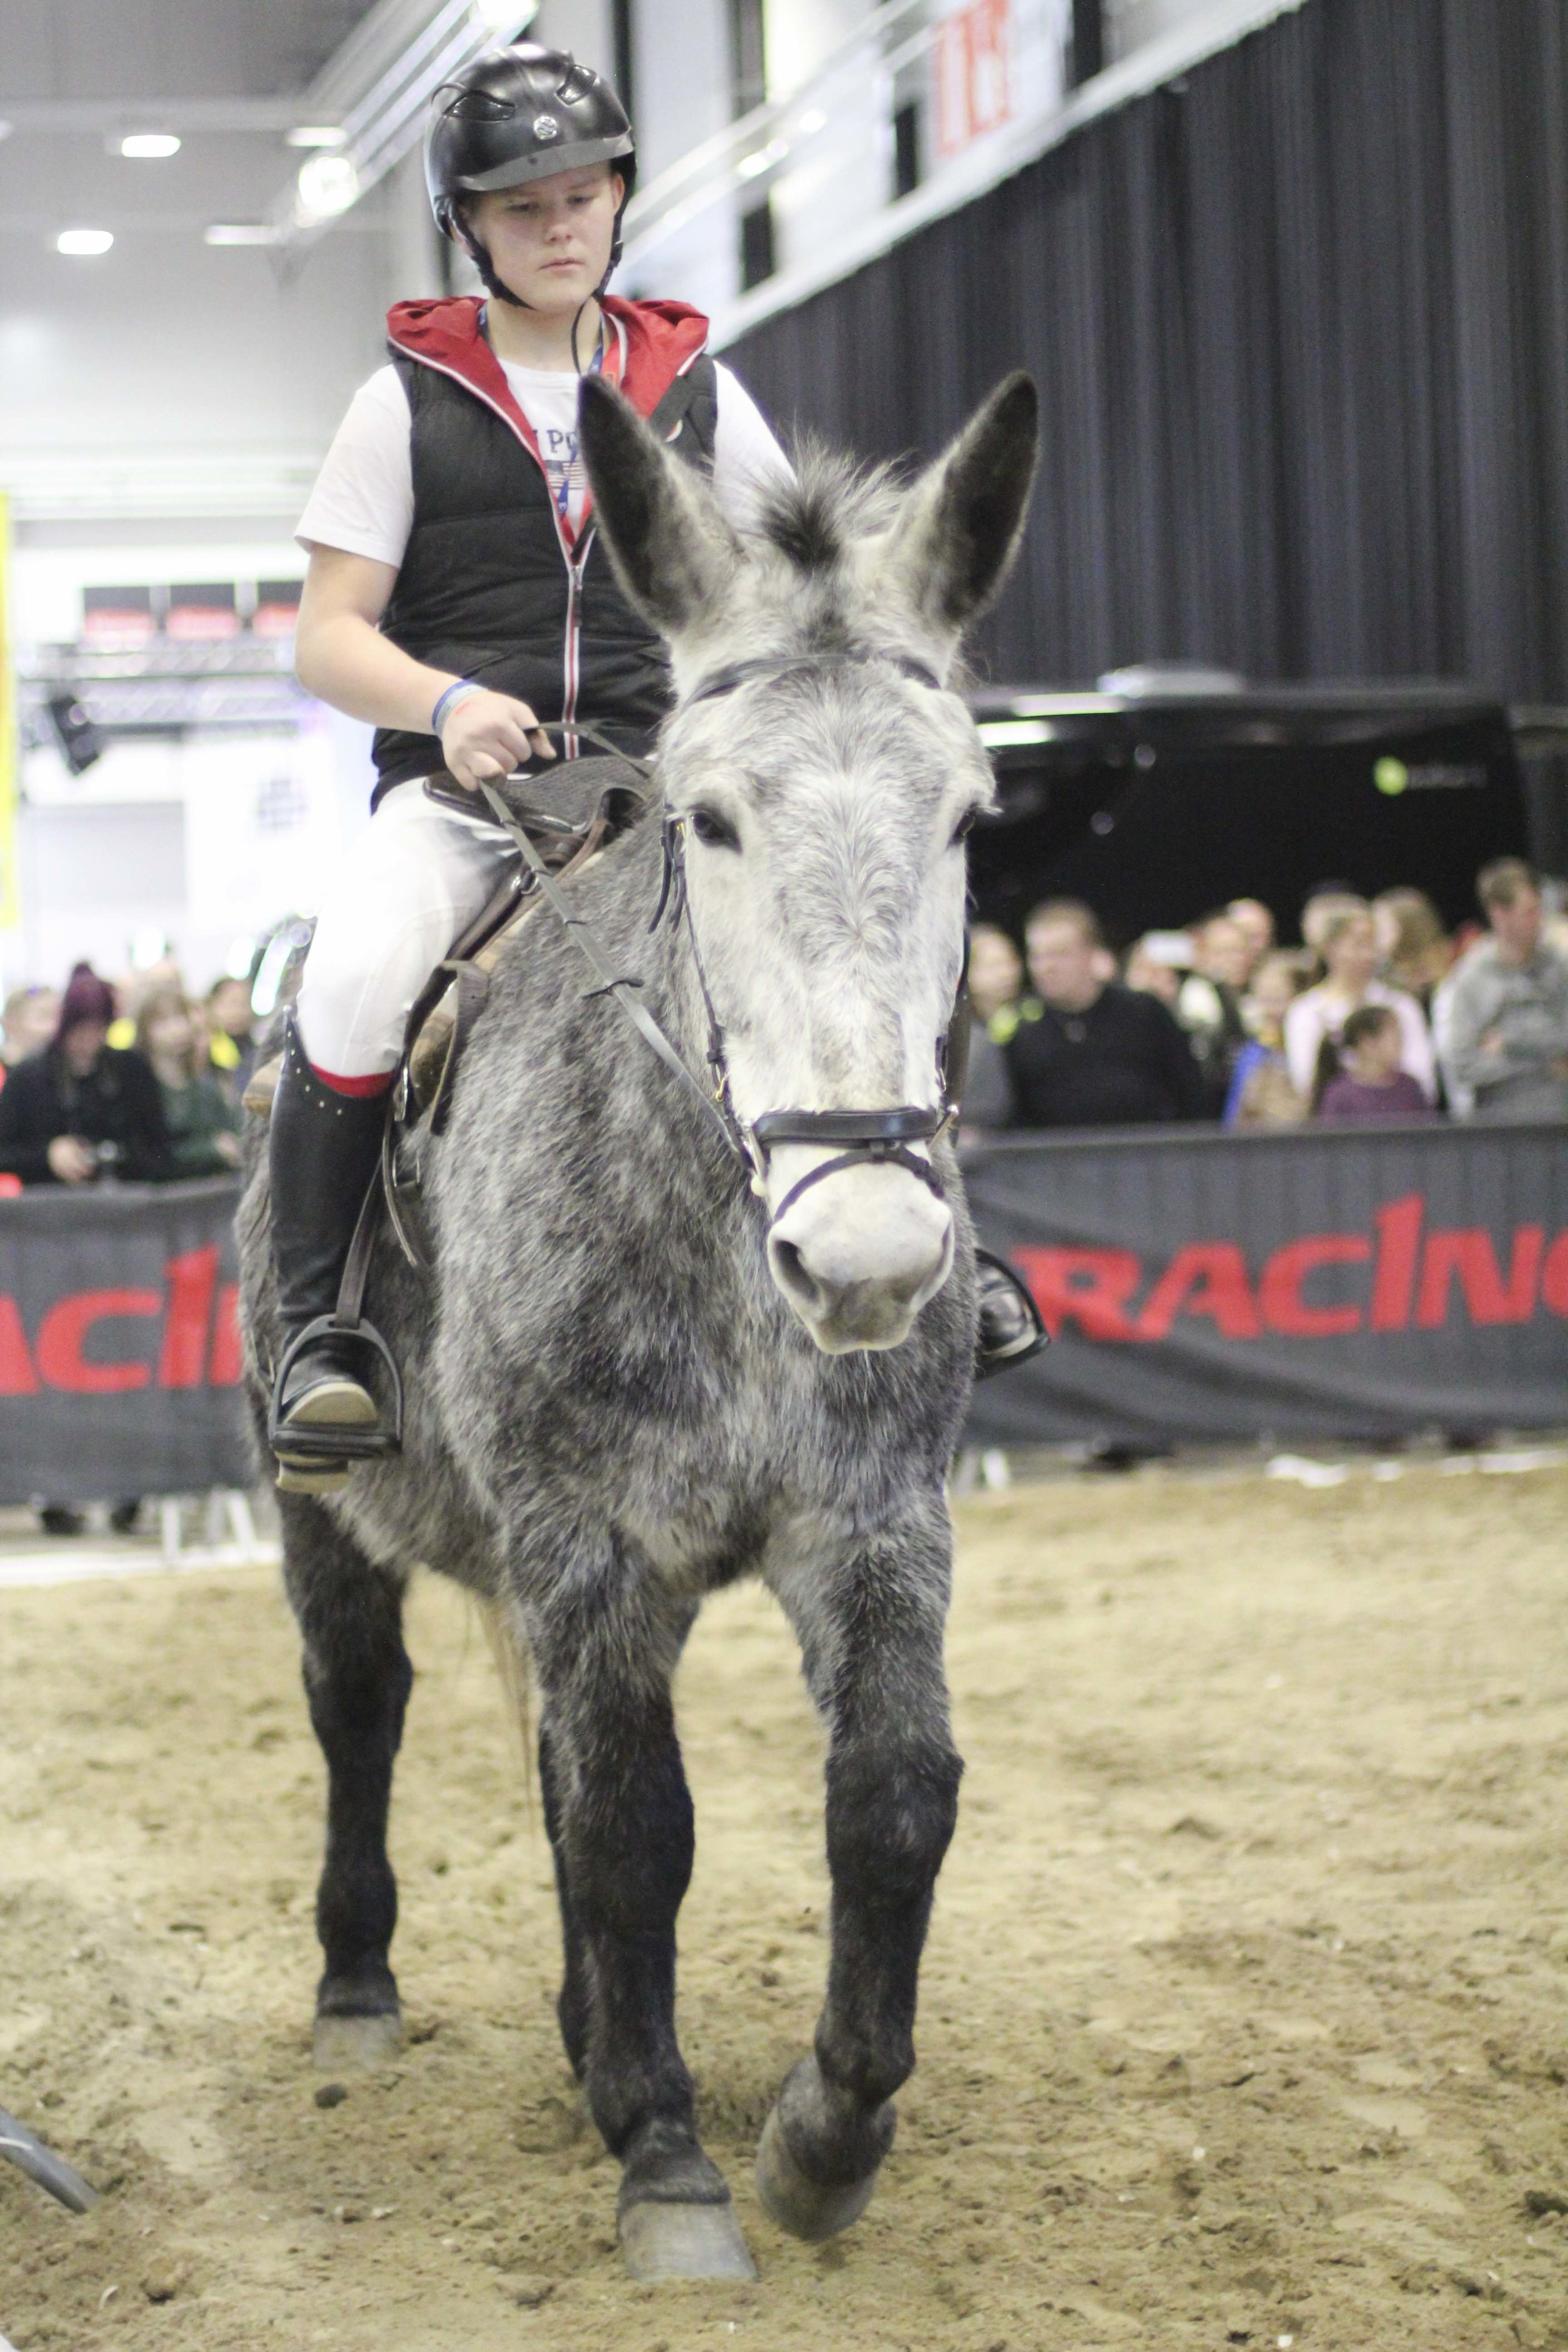 The grey Percheron mule who attended the Horse Fair with Kaisa. Photo by Johanna Plyhm